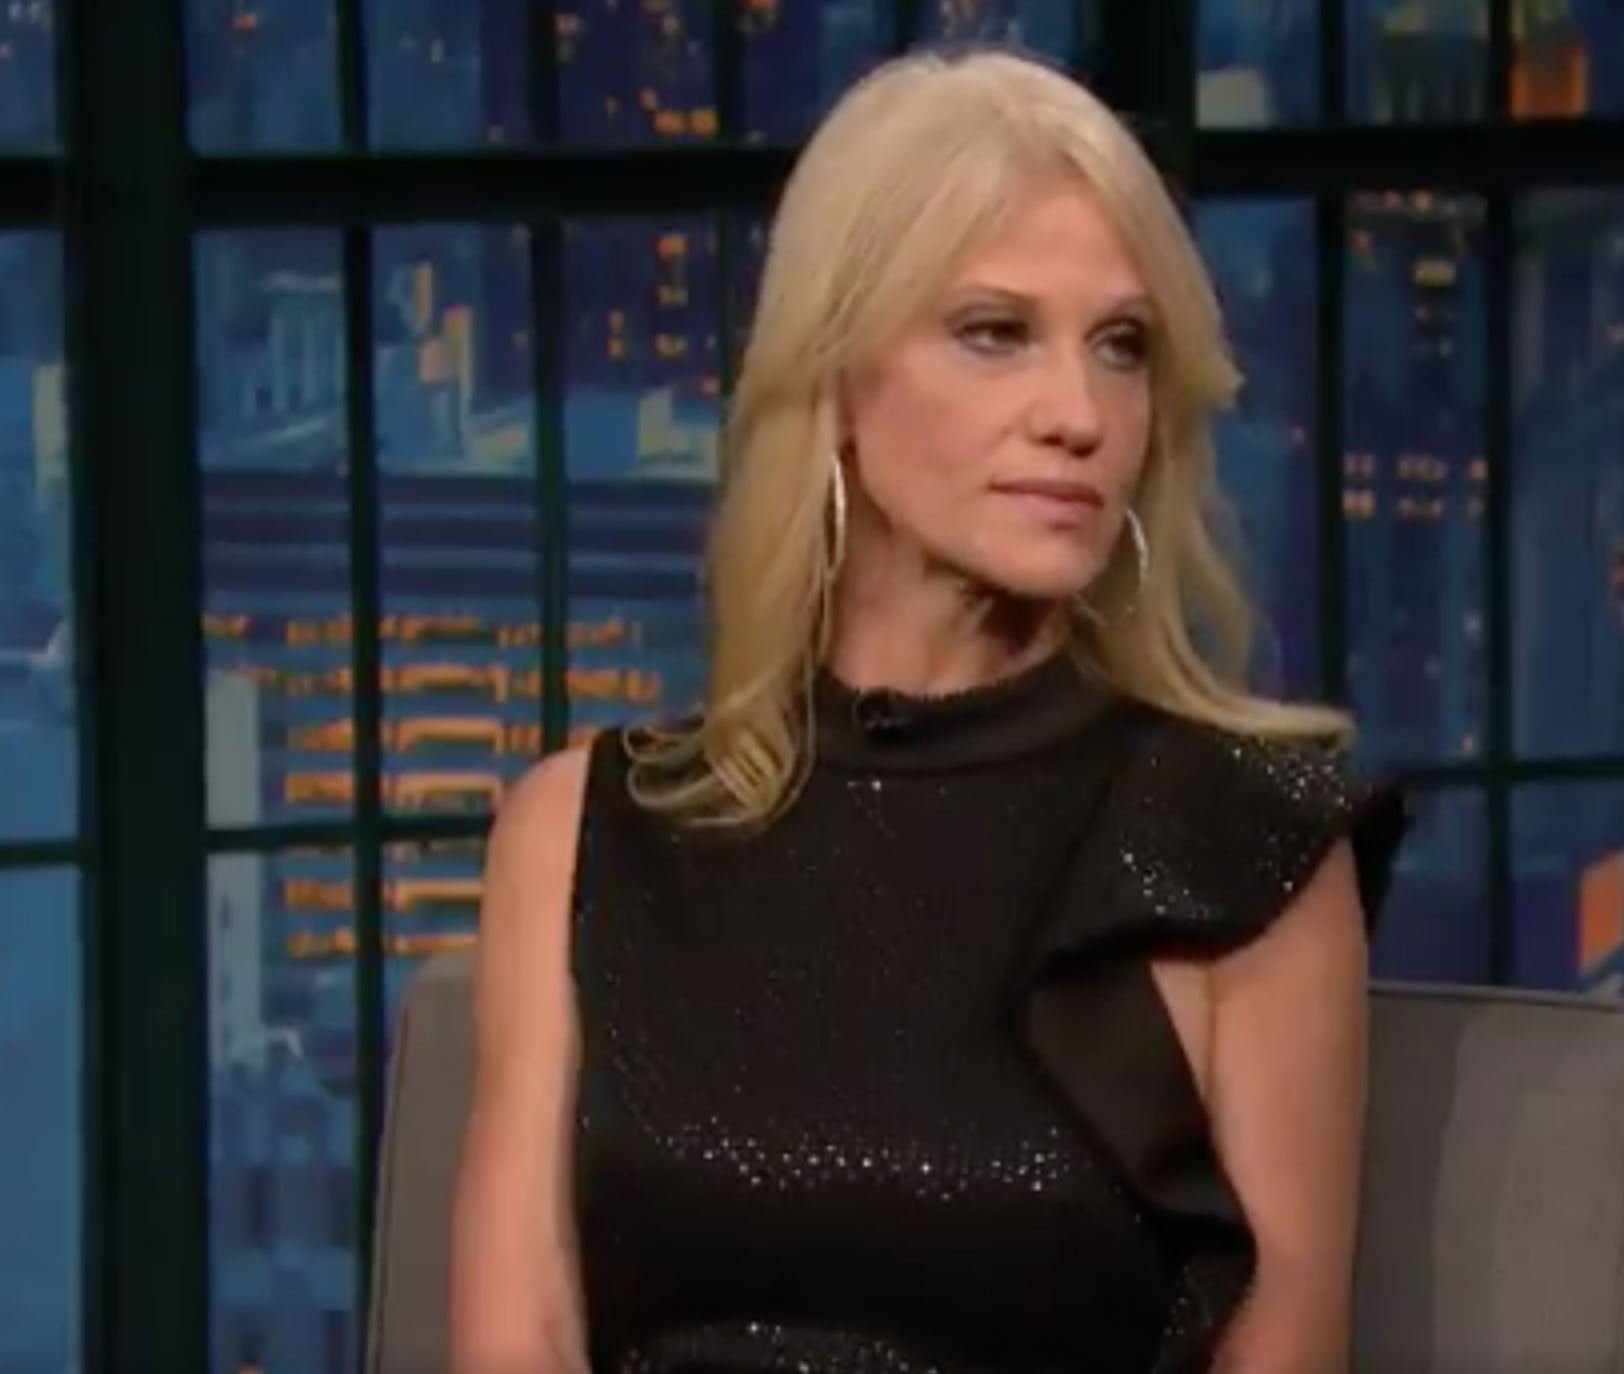 WATCH: Kellyanne Conway Gives Insane Answer Over Report That Russia Has Compromising Info on Trump